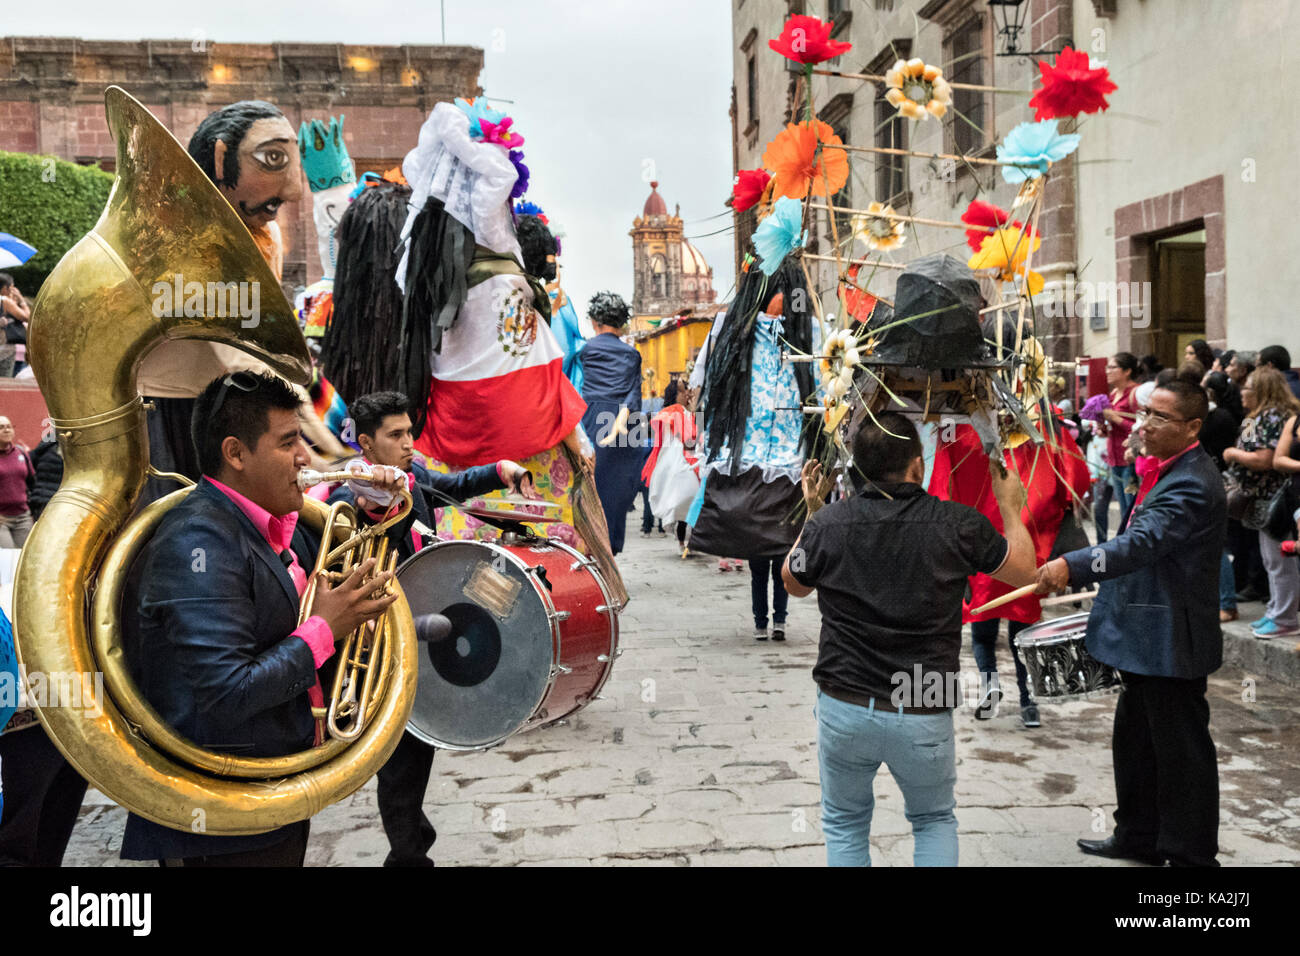 A marching band follows a parade of giant paper-mache puppets called mojigangas in a procession through the city Stock Photo